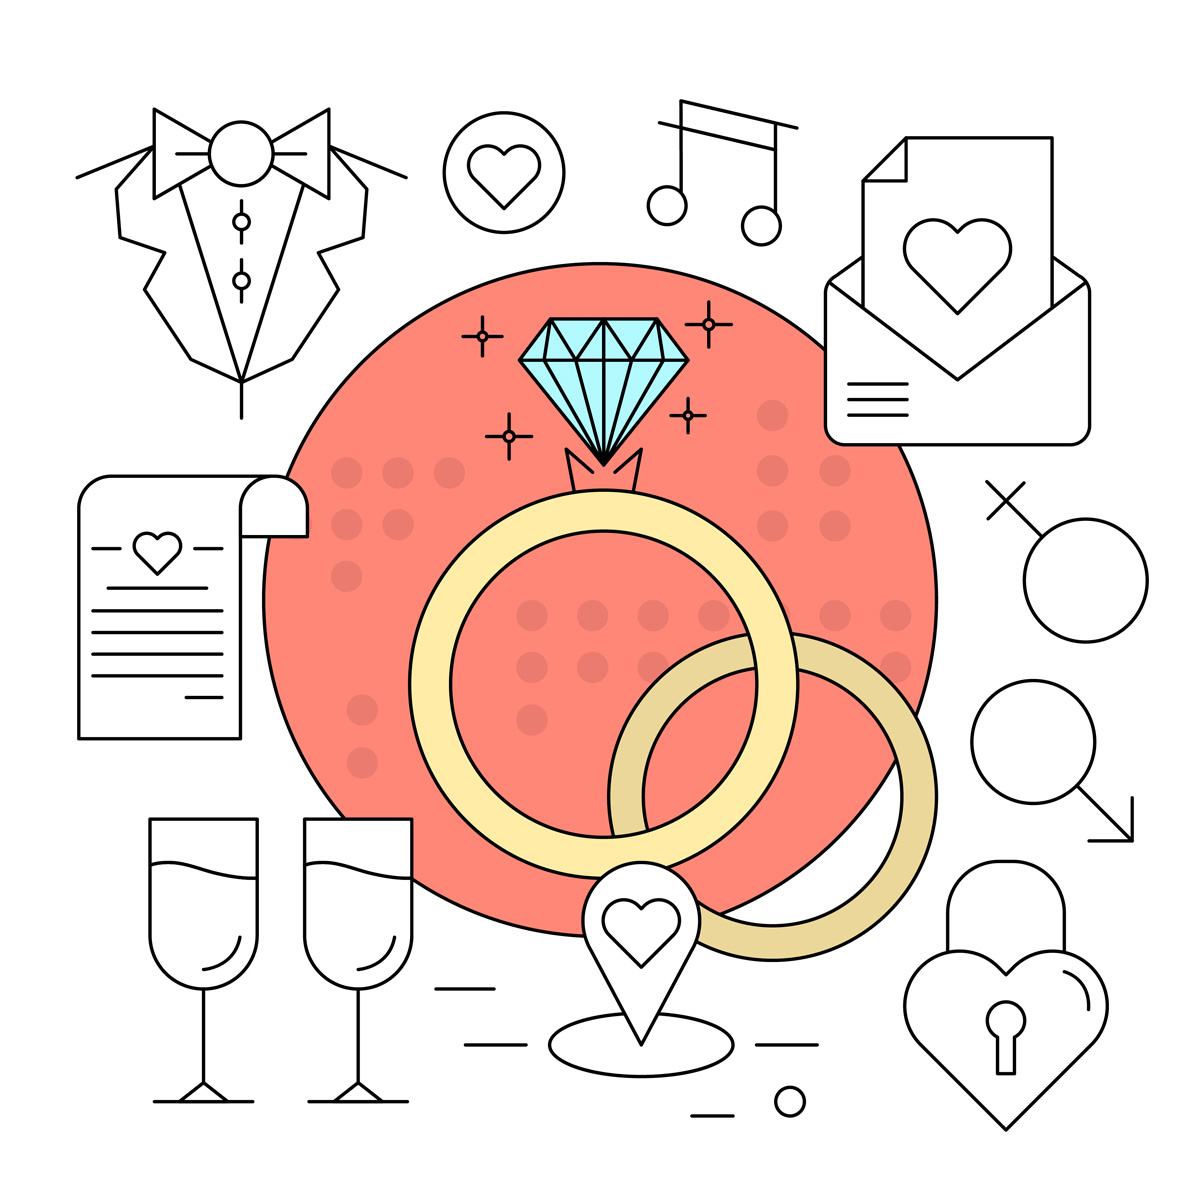 Married In Japan: How To Get Marriage Certificate Faster